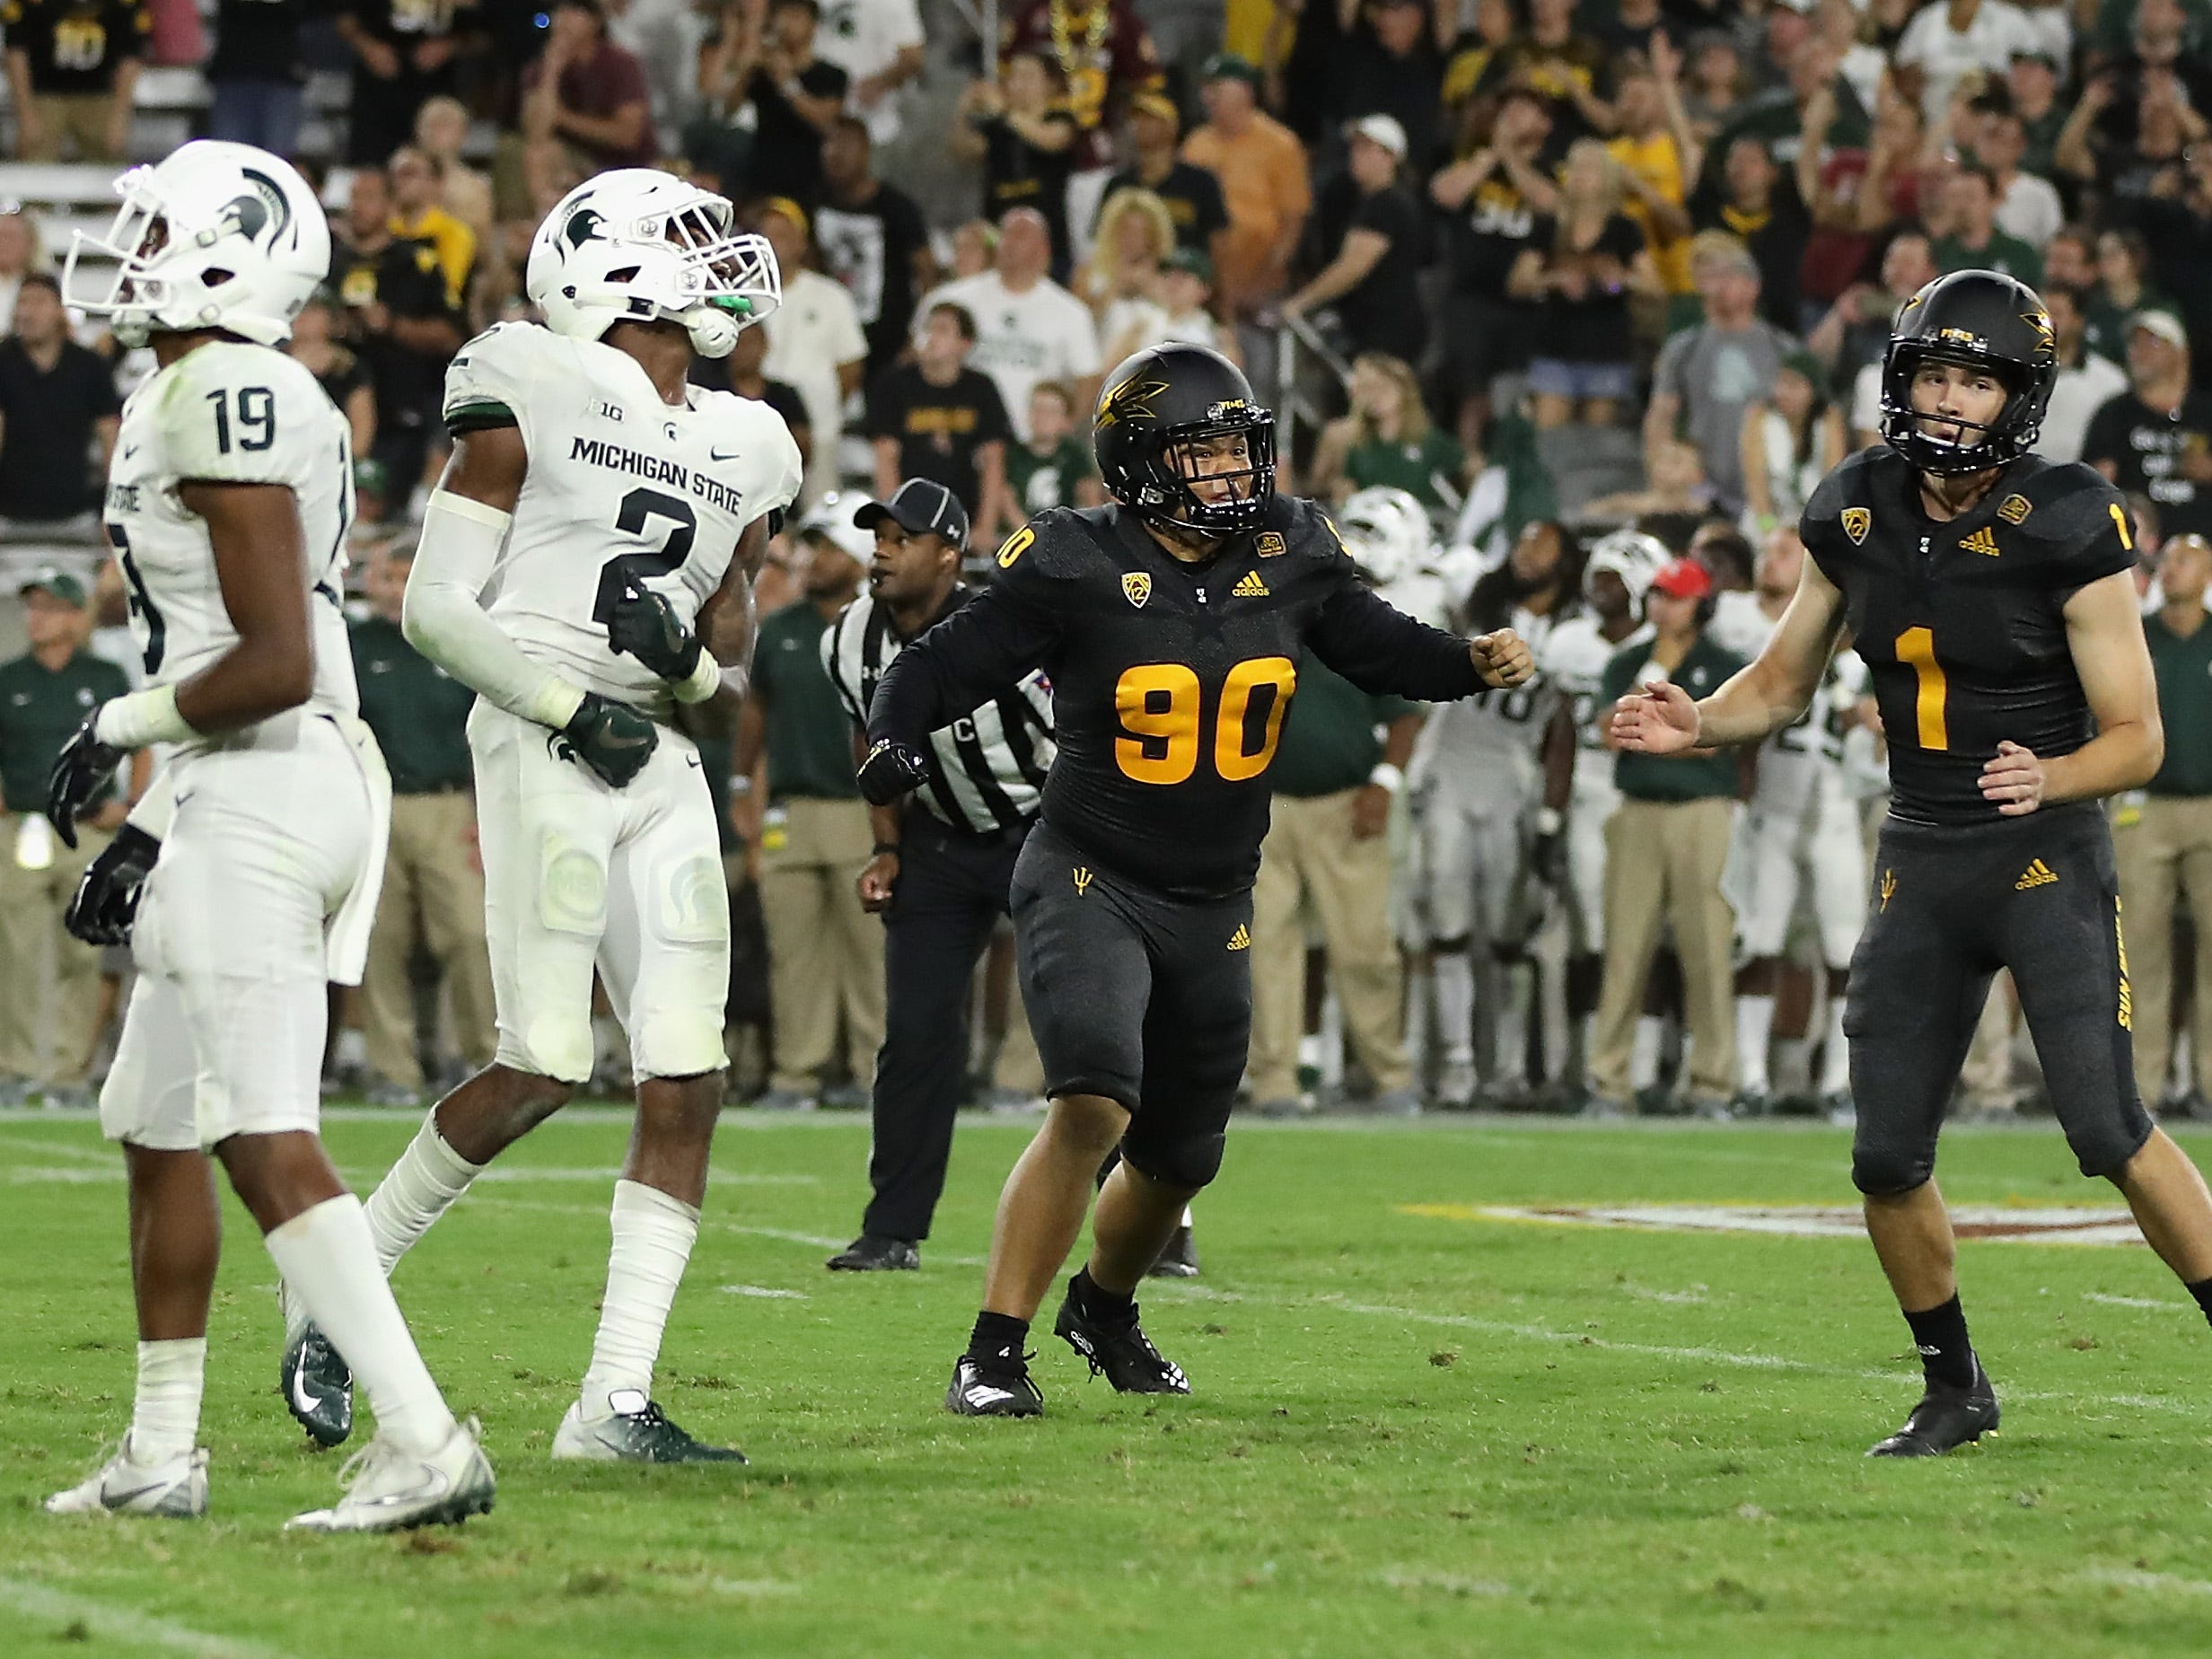 Place kicker Brandon Ruiz #1 (R) of the Arizona State Sun Devils celebrates after kicking the game winning 28 yard field goal against the Michigan State Spartans in the college football game at Sun Devil Stadium on September 8, 2018 in Tempe, Arizona.  The Sun Devils defeated the Spartans 16-13.